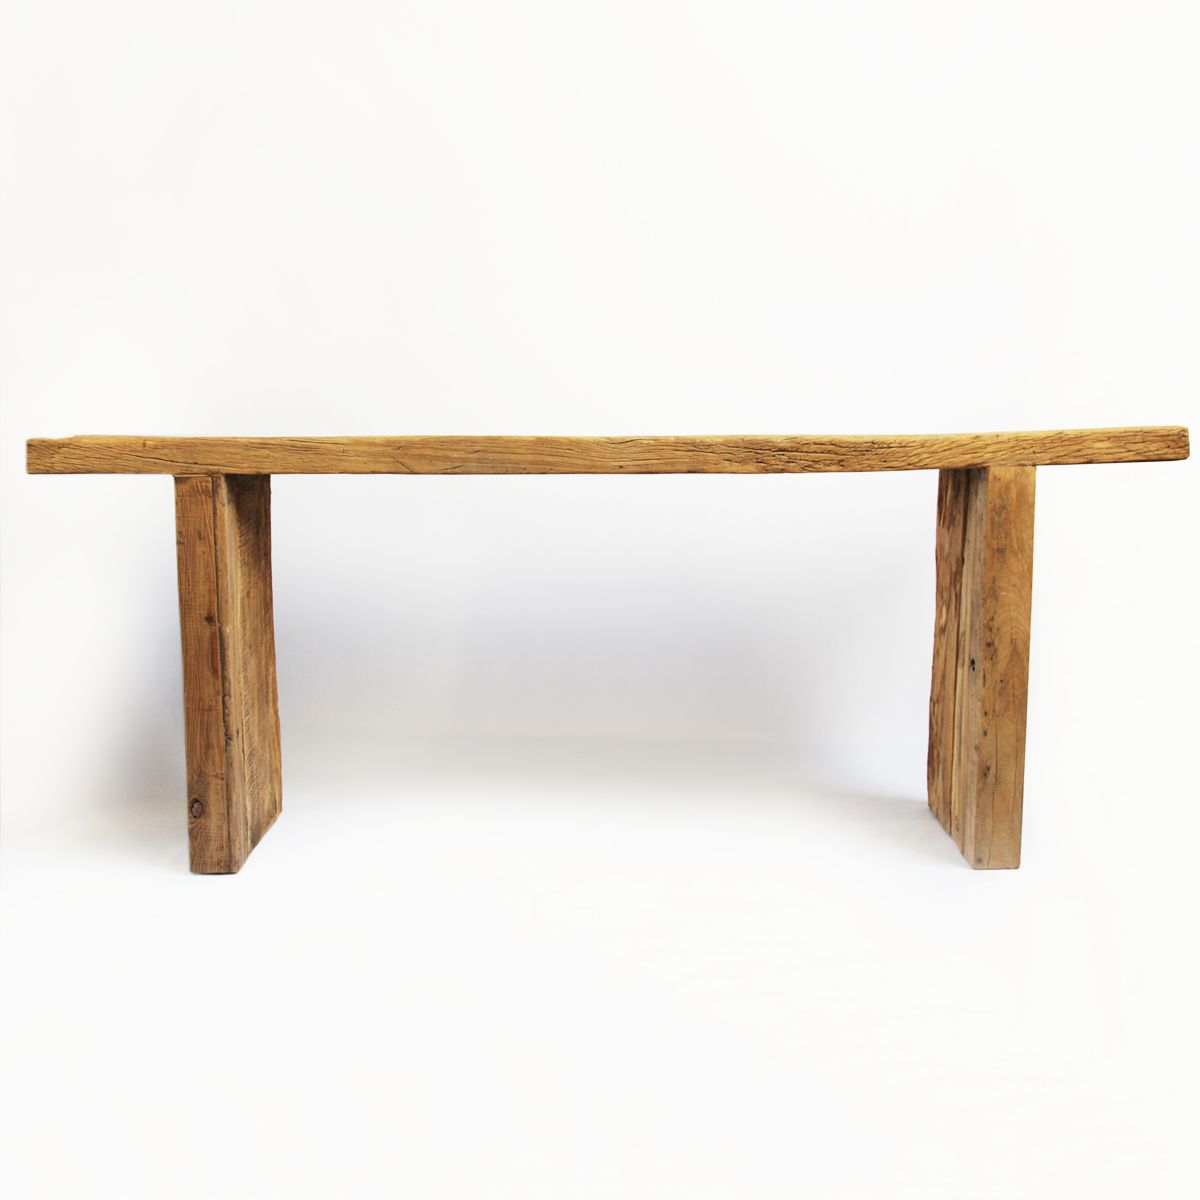 Delicieux Rustic Aged Elm Plank Wood Console Table With A Raw Wood Finish.